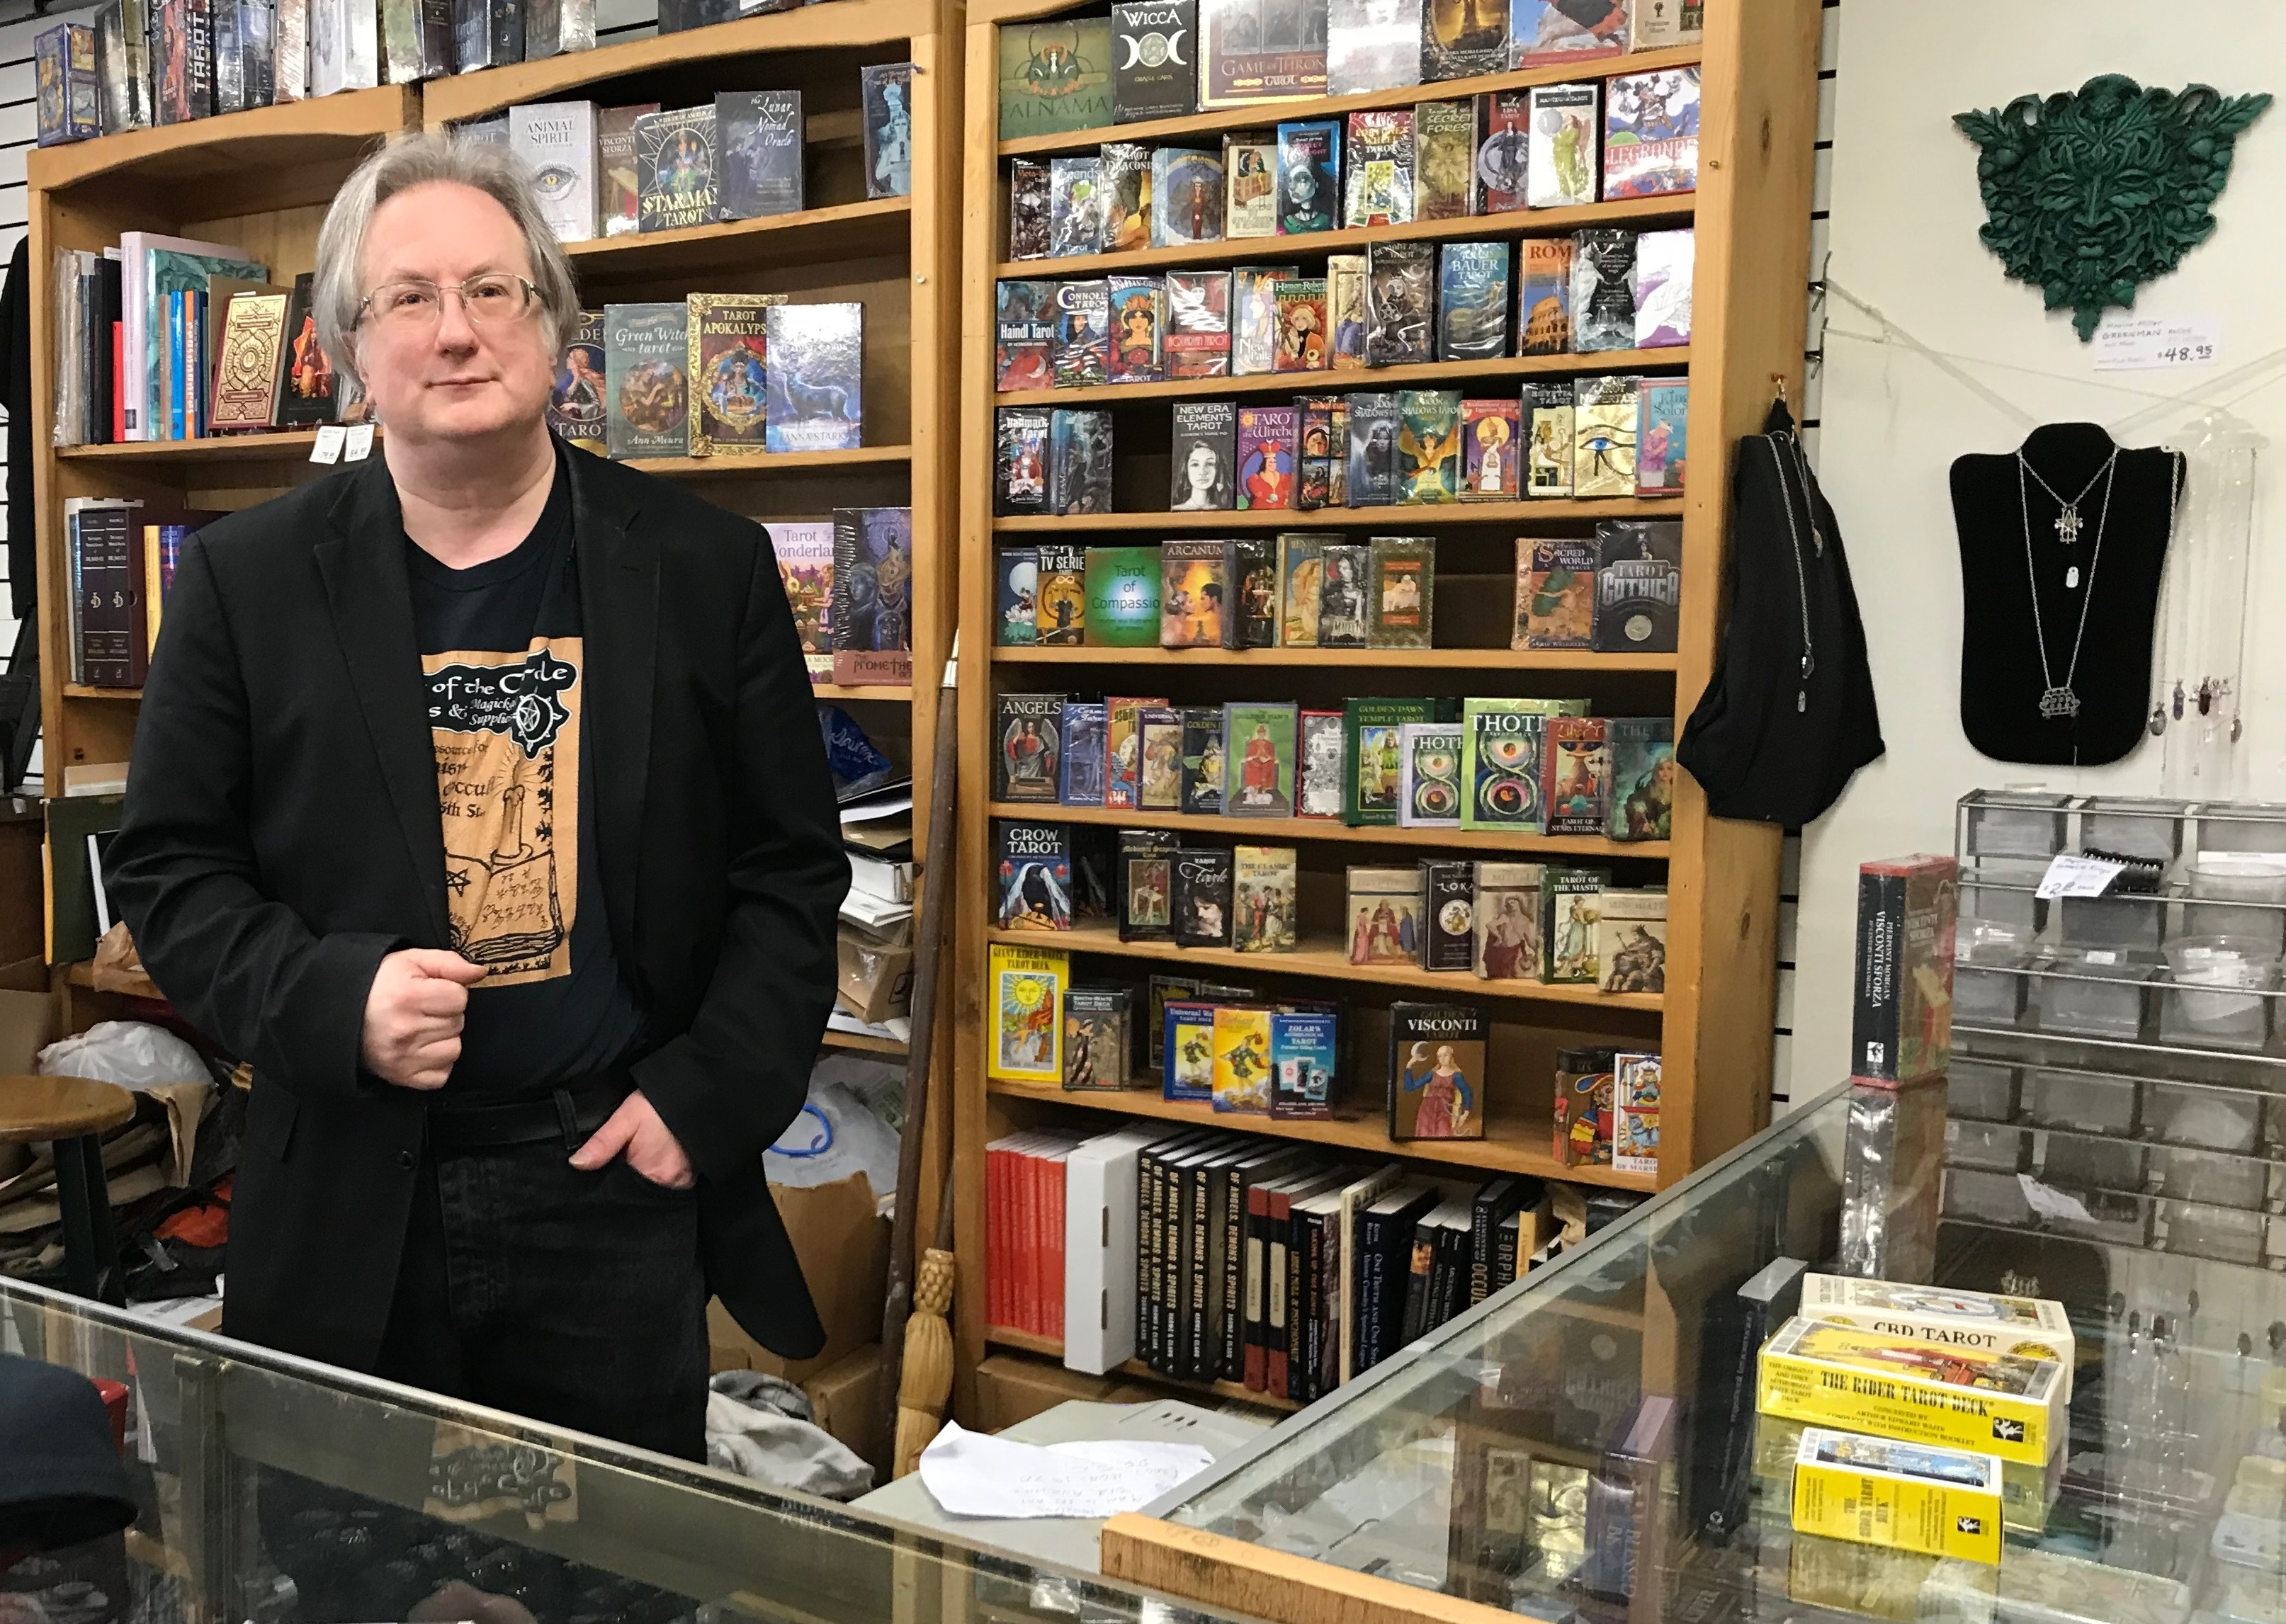 In the age of Amazon, spiritual and religious bookstores find a